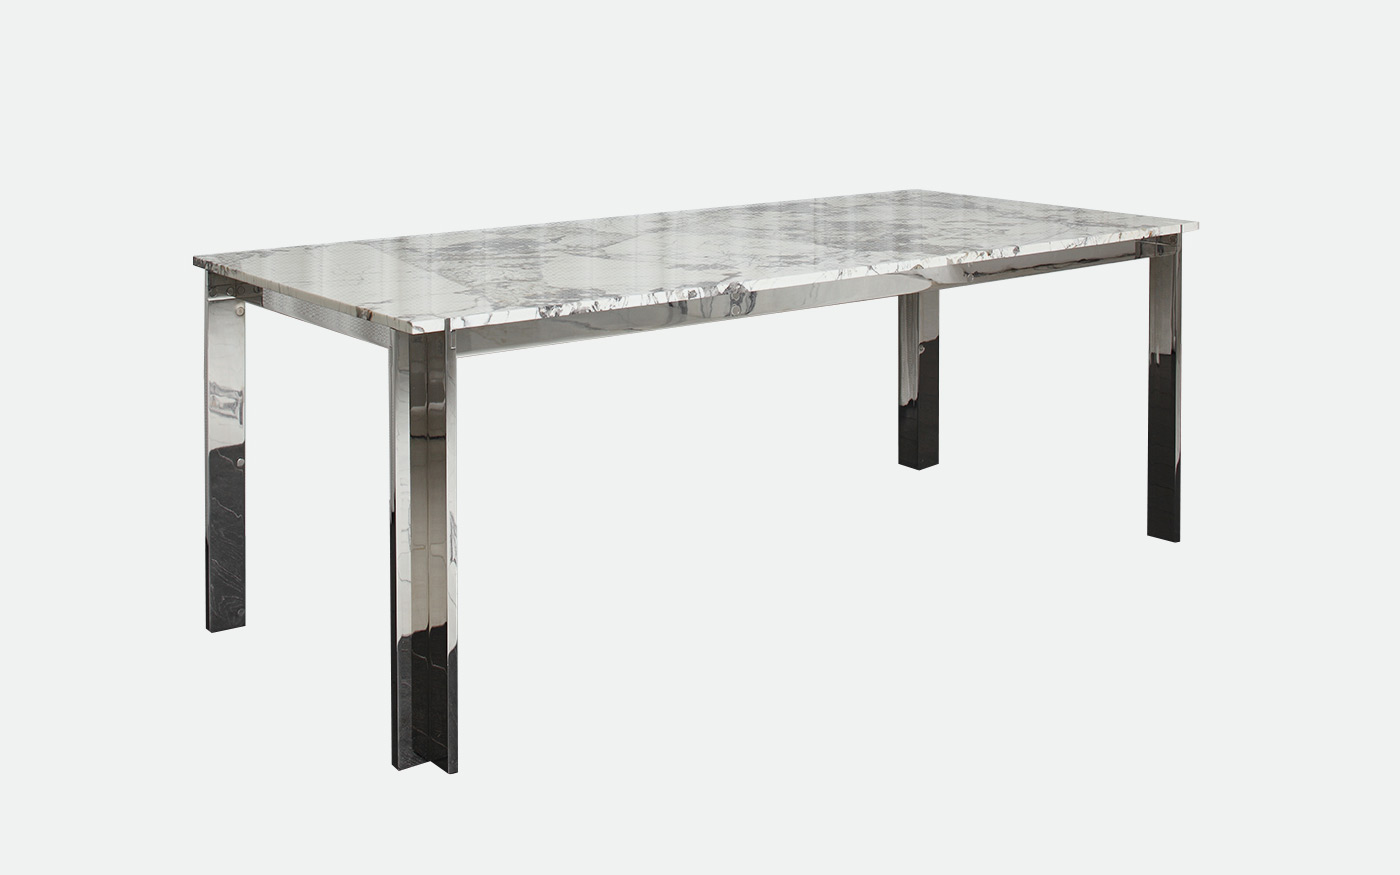 Nickel plated dining table with Patagonia Quartzite table top